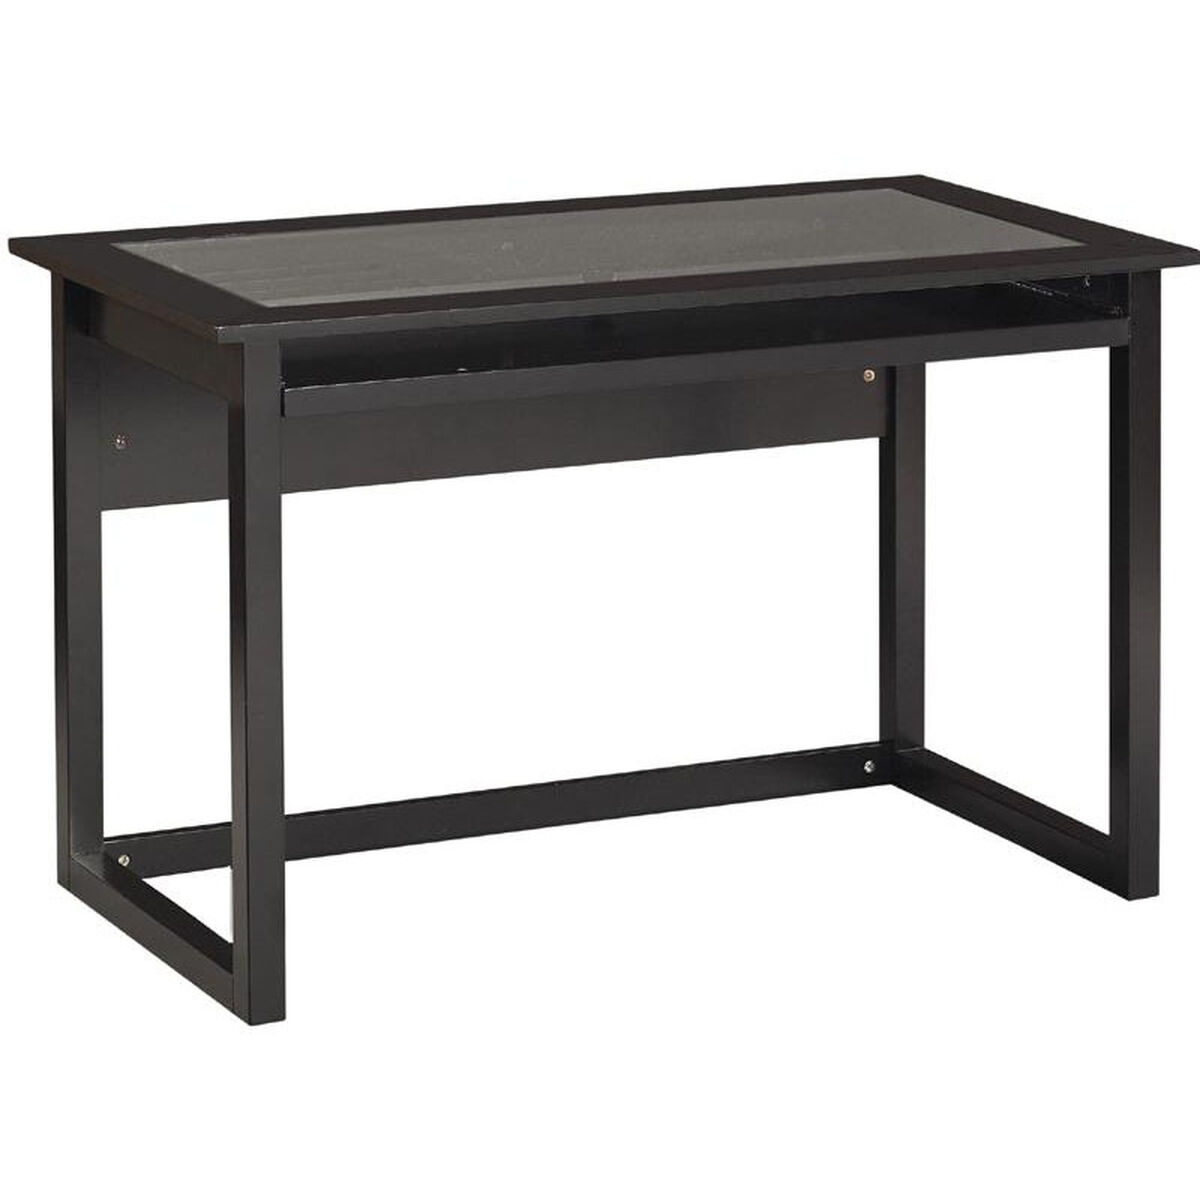 Our Osp Designs Meridian Collection Computer Desk With Tempered Glass Top And Pull Out Keyboard Tray